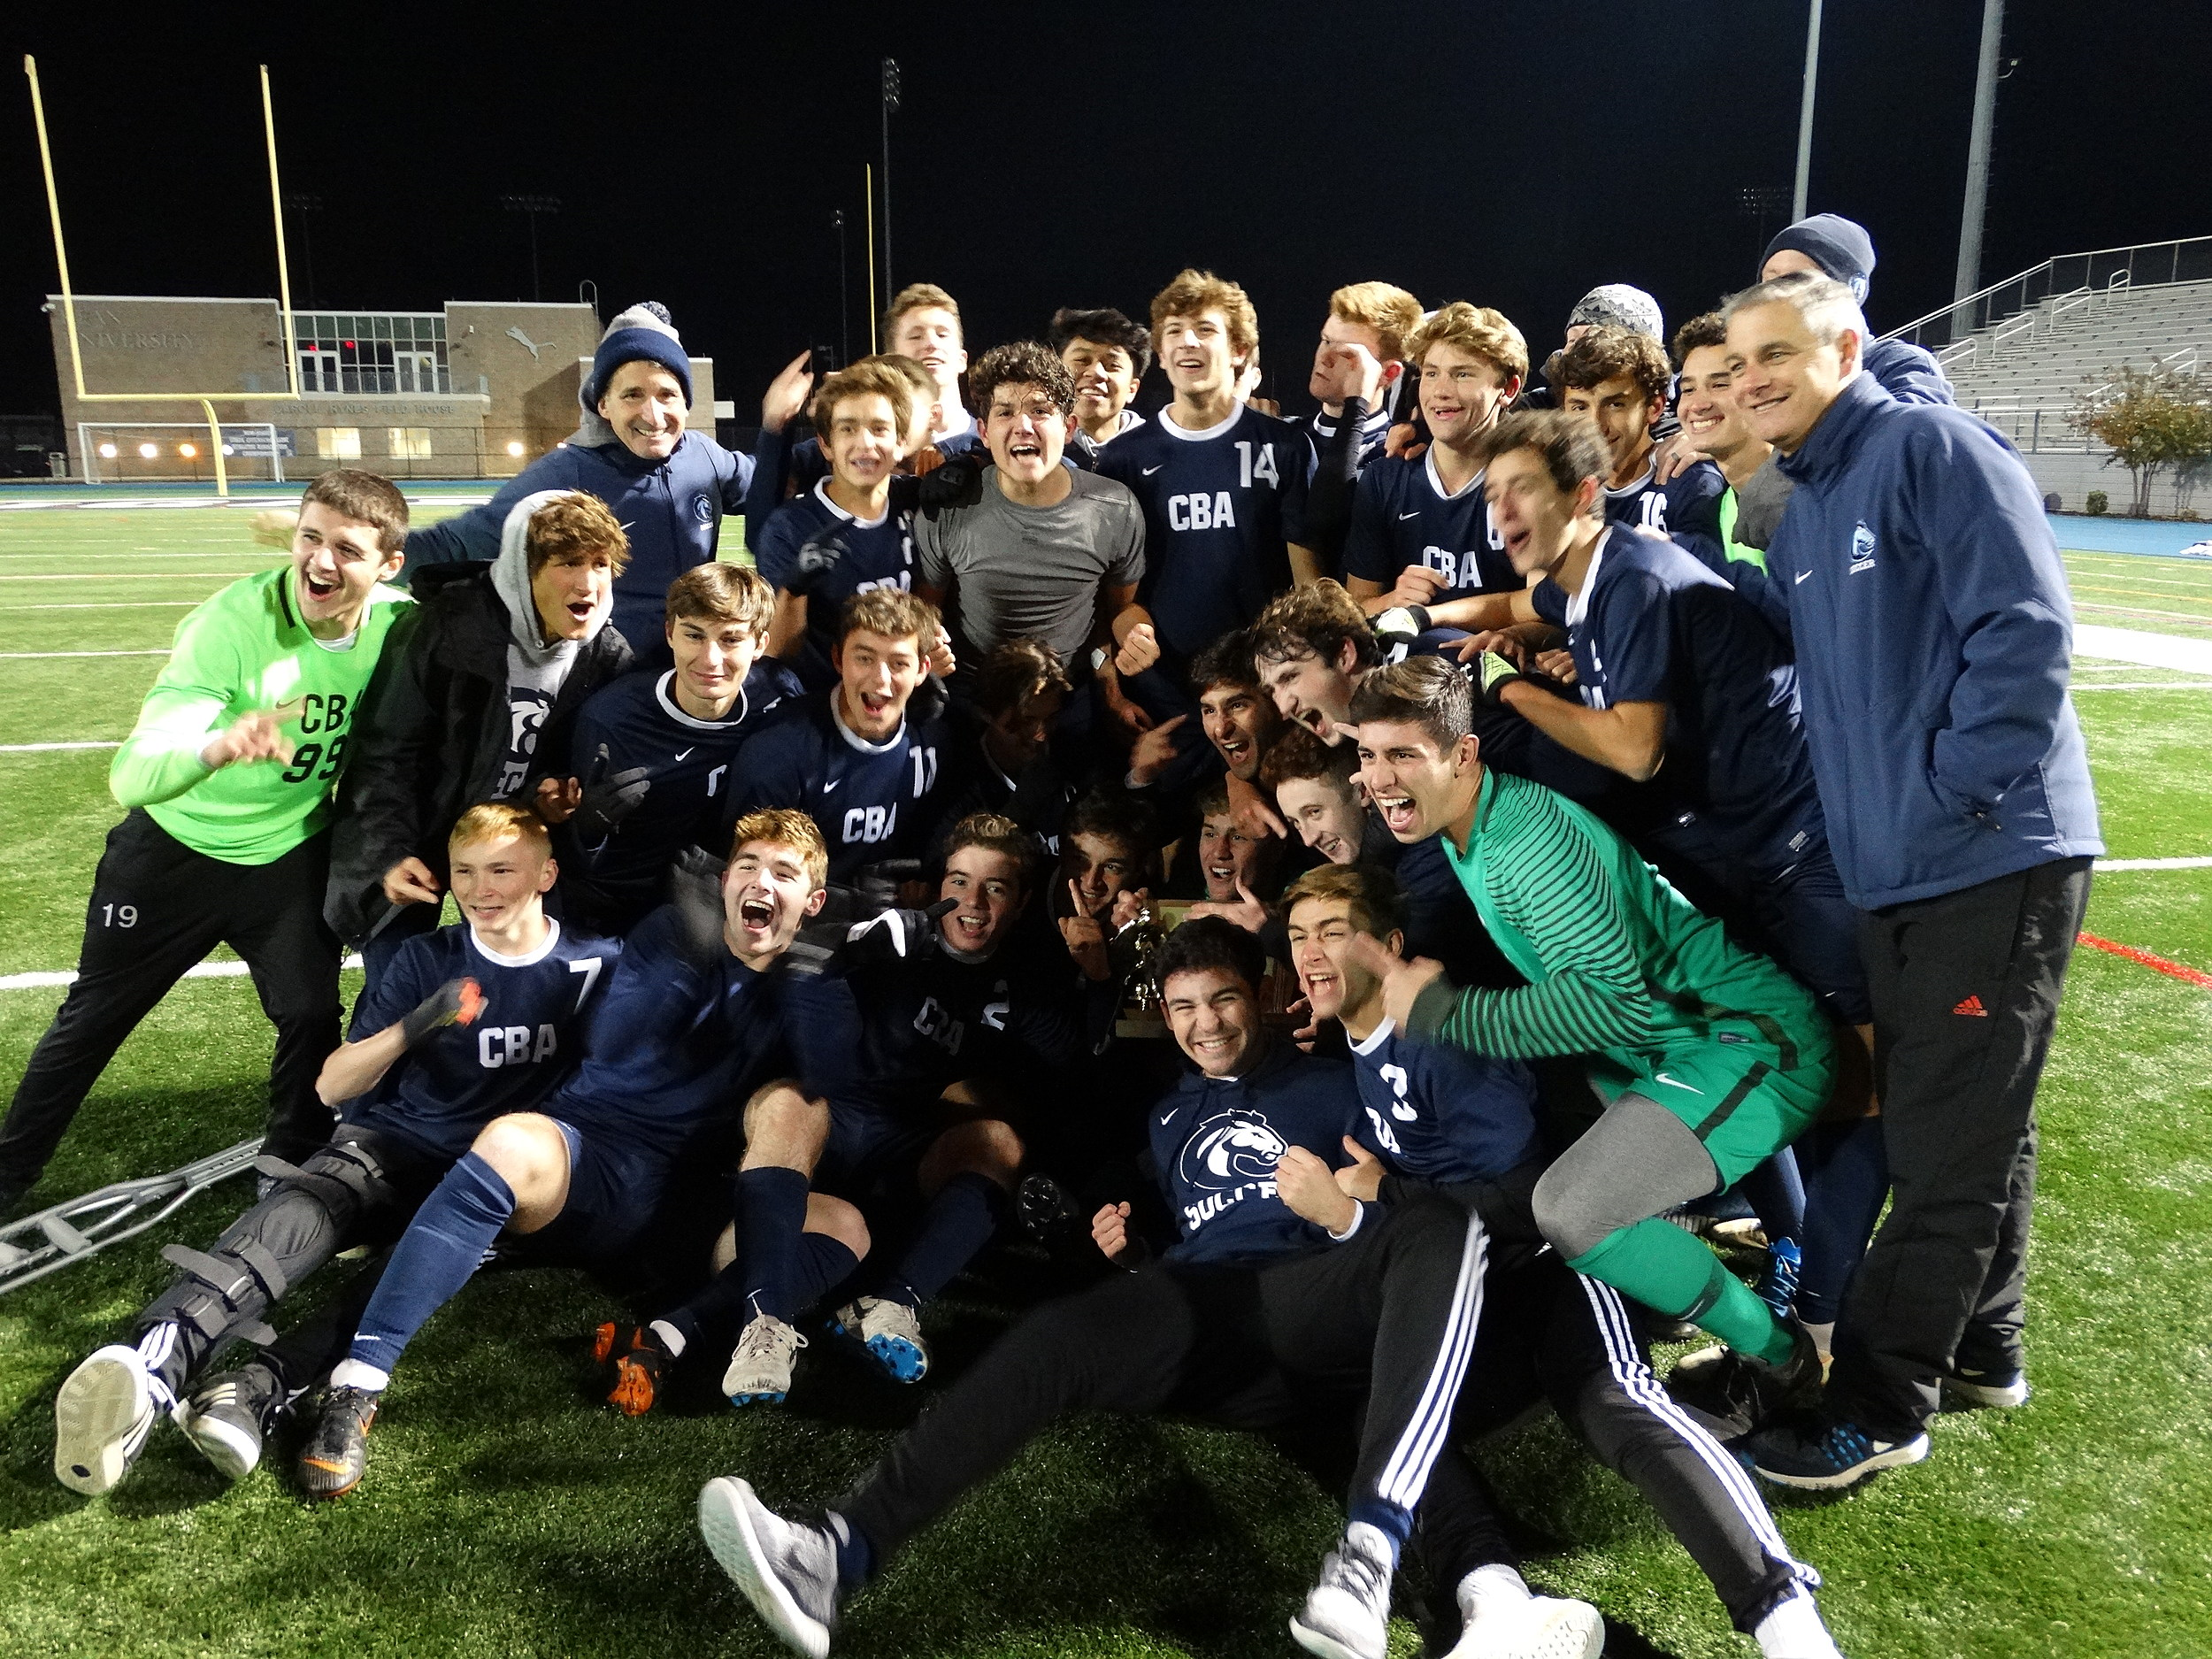 Boys Soccer Cba Stuns Delbarton In Double Ot To Win Non Public A